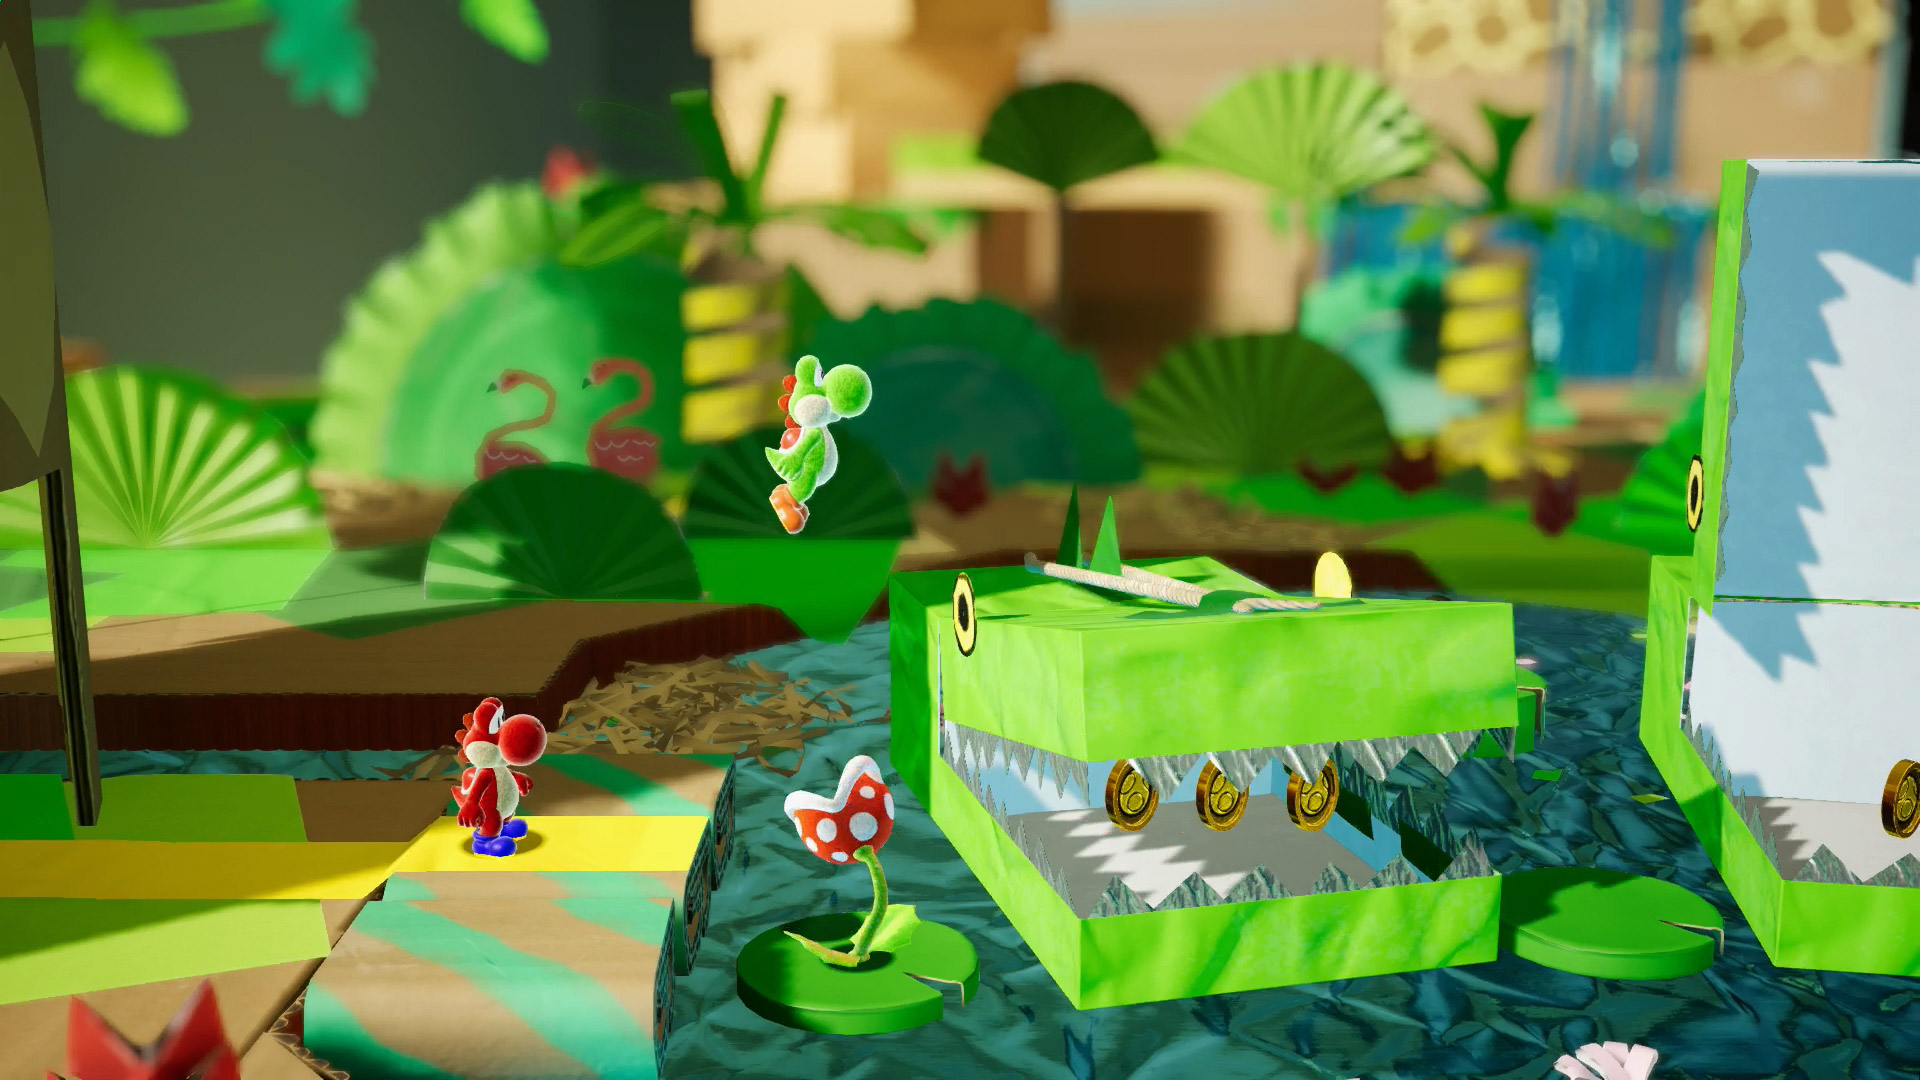 TMK | Downloads | Images | Screen Shots | Yoshi's Crafted